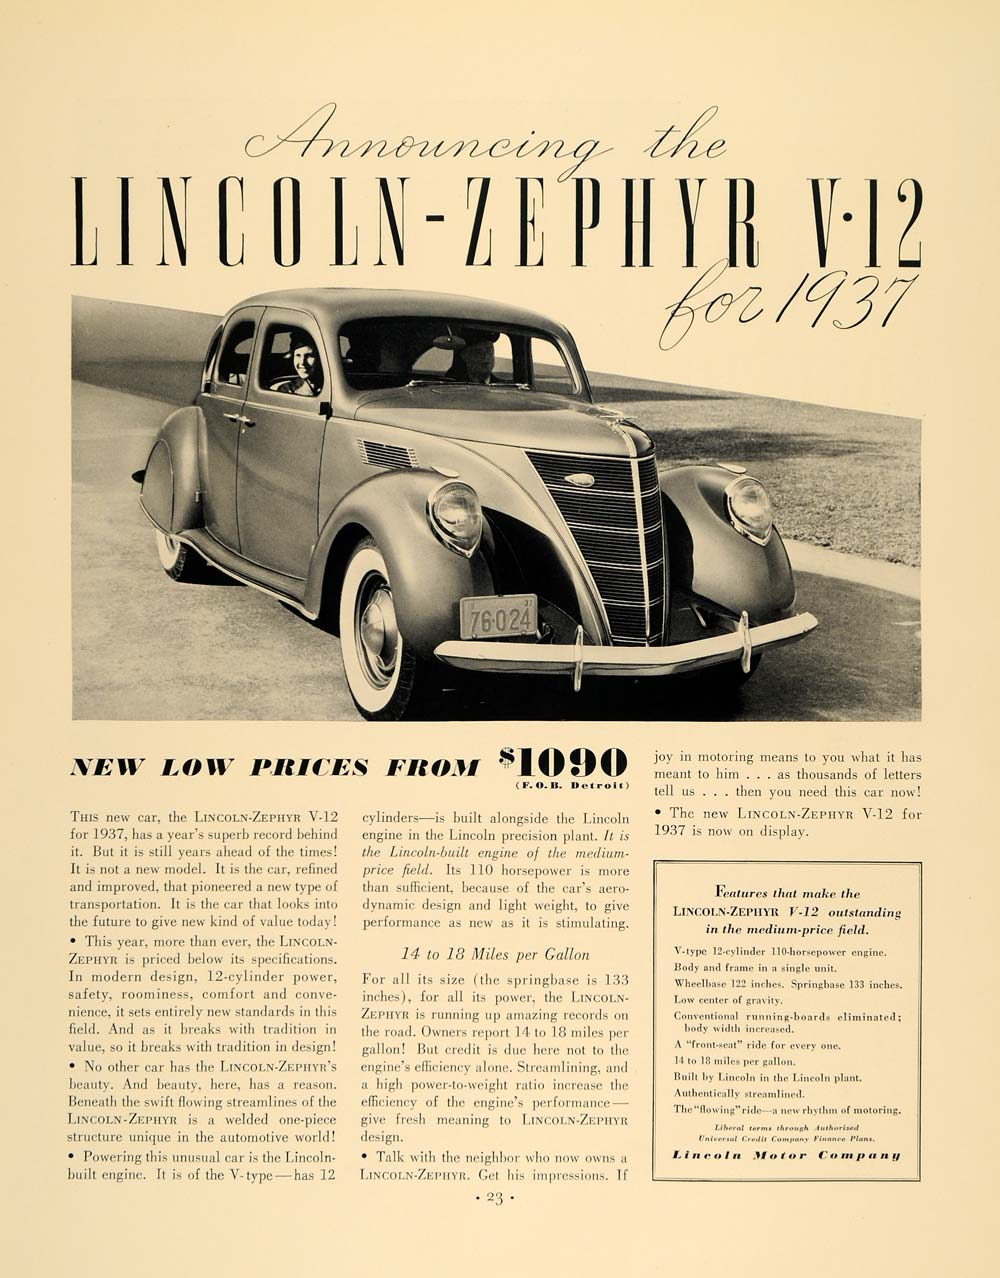 1936 Ad Lincoln Motors Zephyr V-12 Automobile For 1937 - ORIGINAL F5A